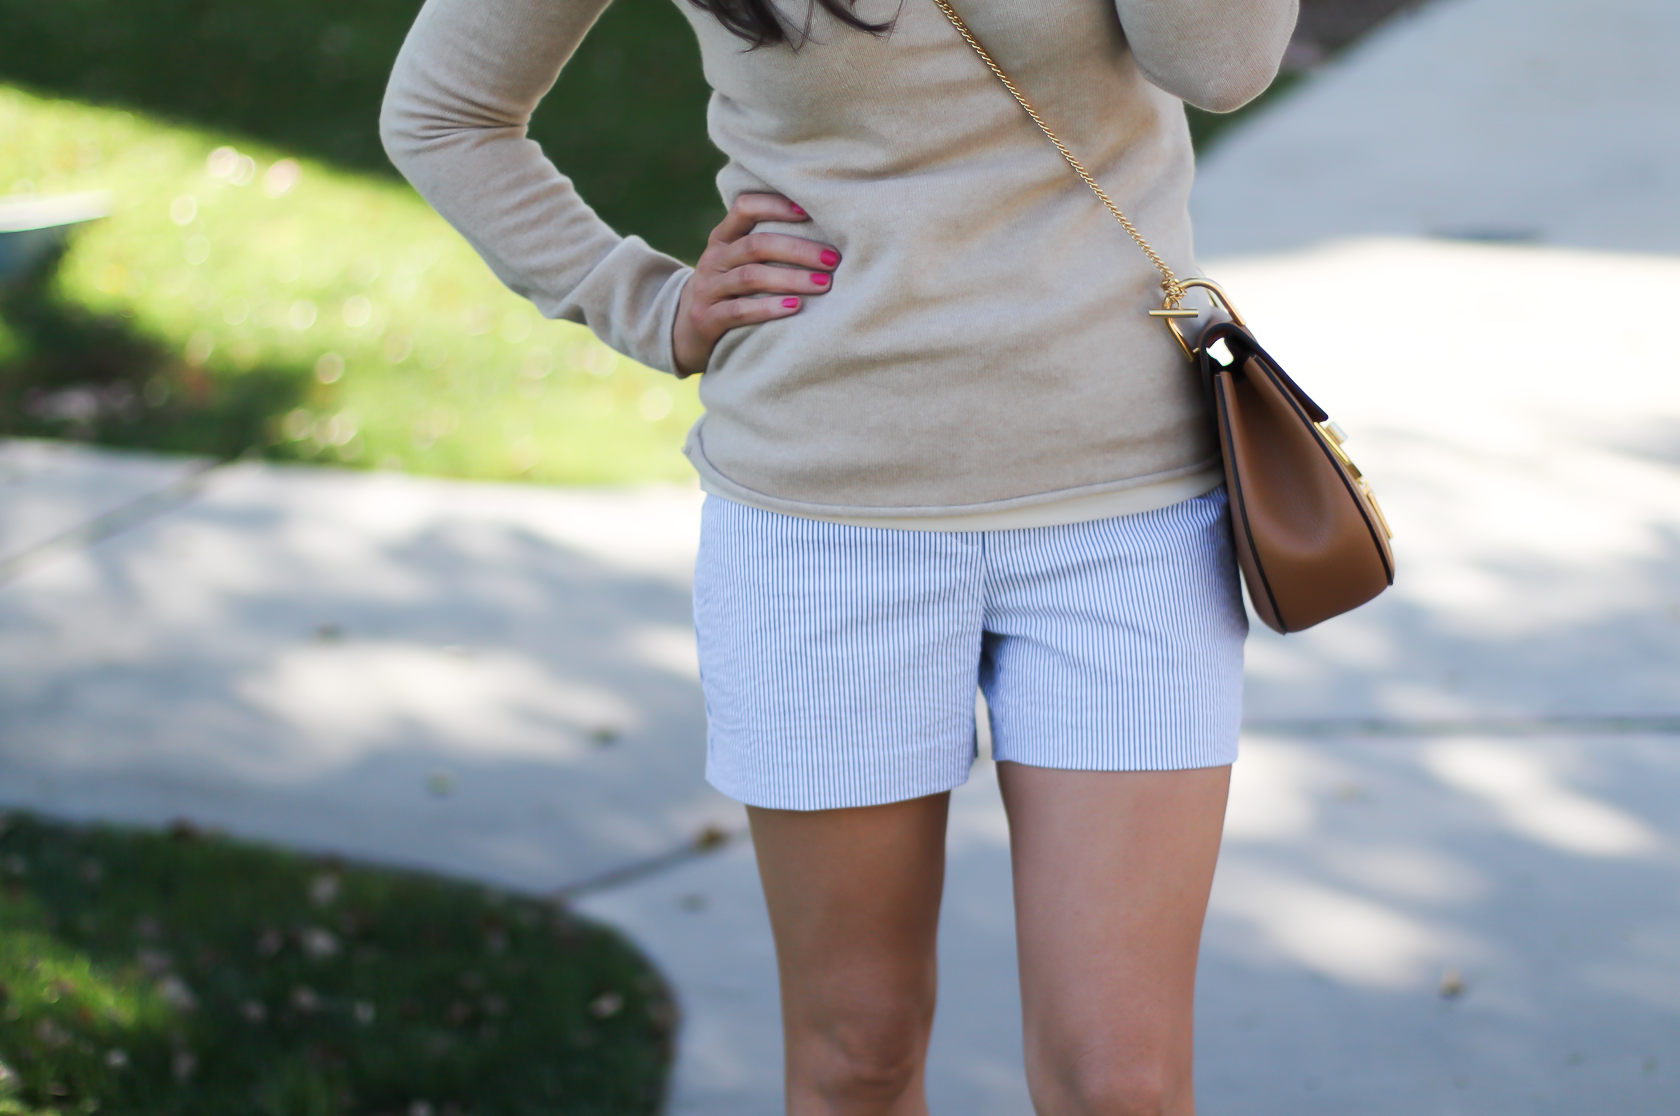 Seersucker Shorts, Tan Cashmere Sweater, Tan Leather Ankle Strap Heels, Tan Leather Chain Strap Bag, Ann Taylor, J.Crew, Steve Madden, Chloe  10